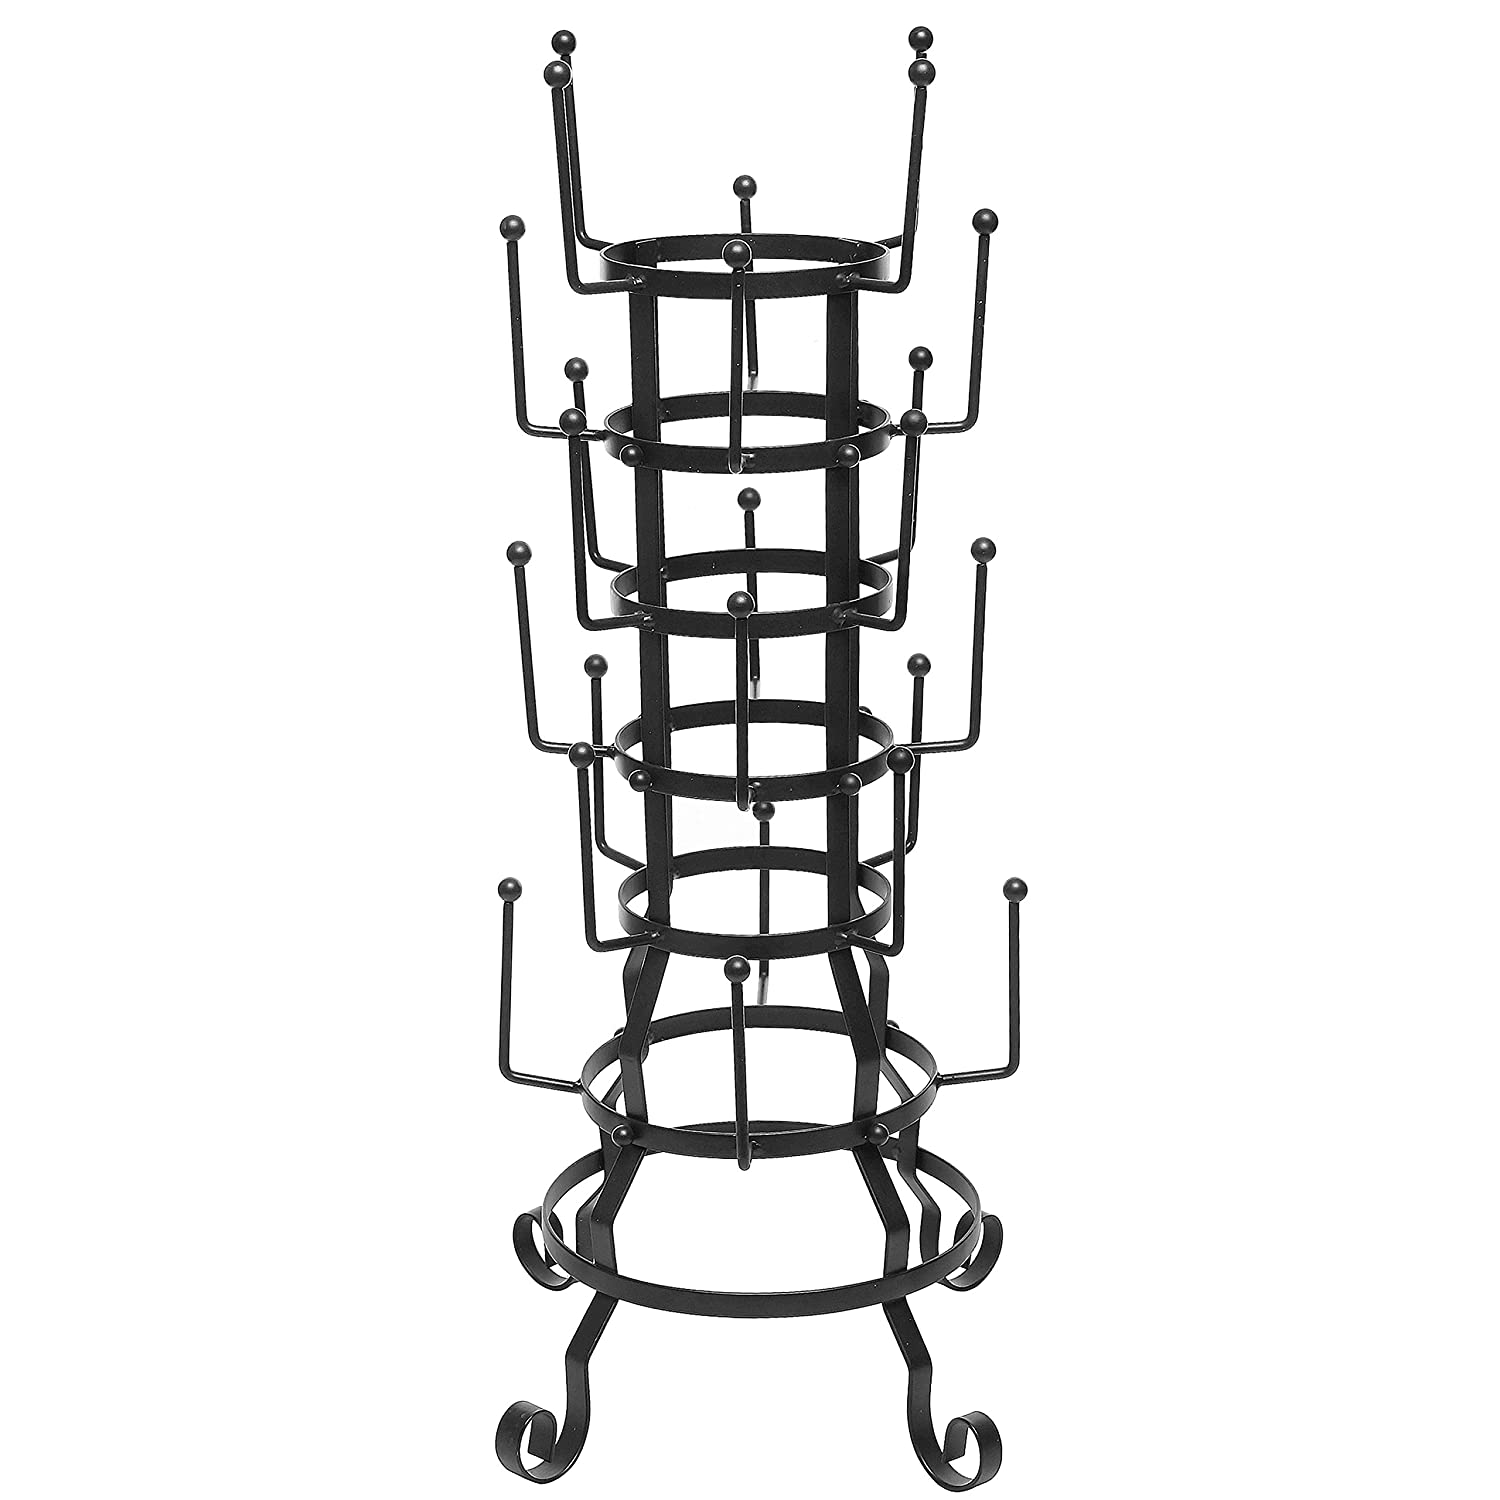 MyGift® Vintage Rustic Black Iron Mug / Glass / Cup / Bottle Hanger Hooks Drying Rack Organizer Stand COMIN16JU006293